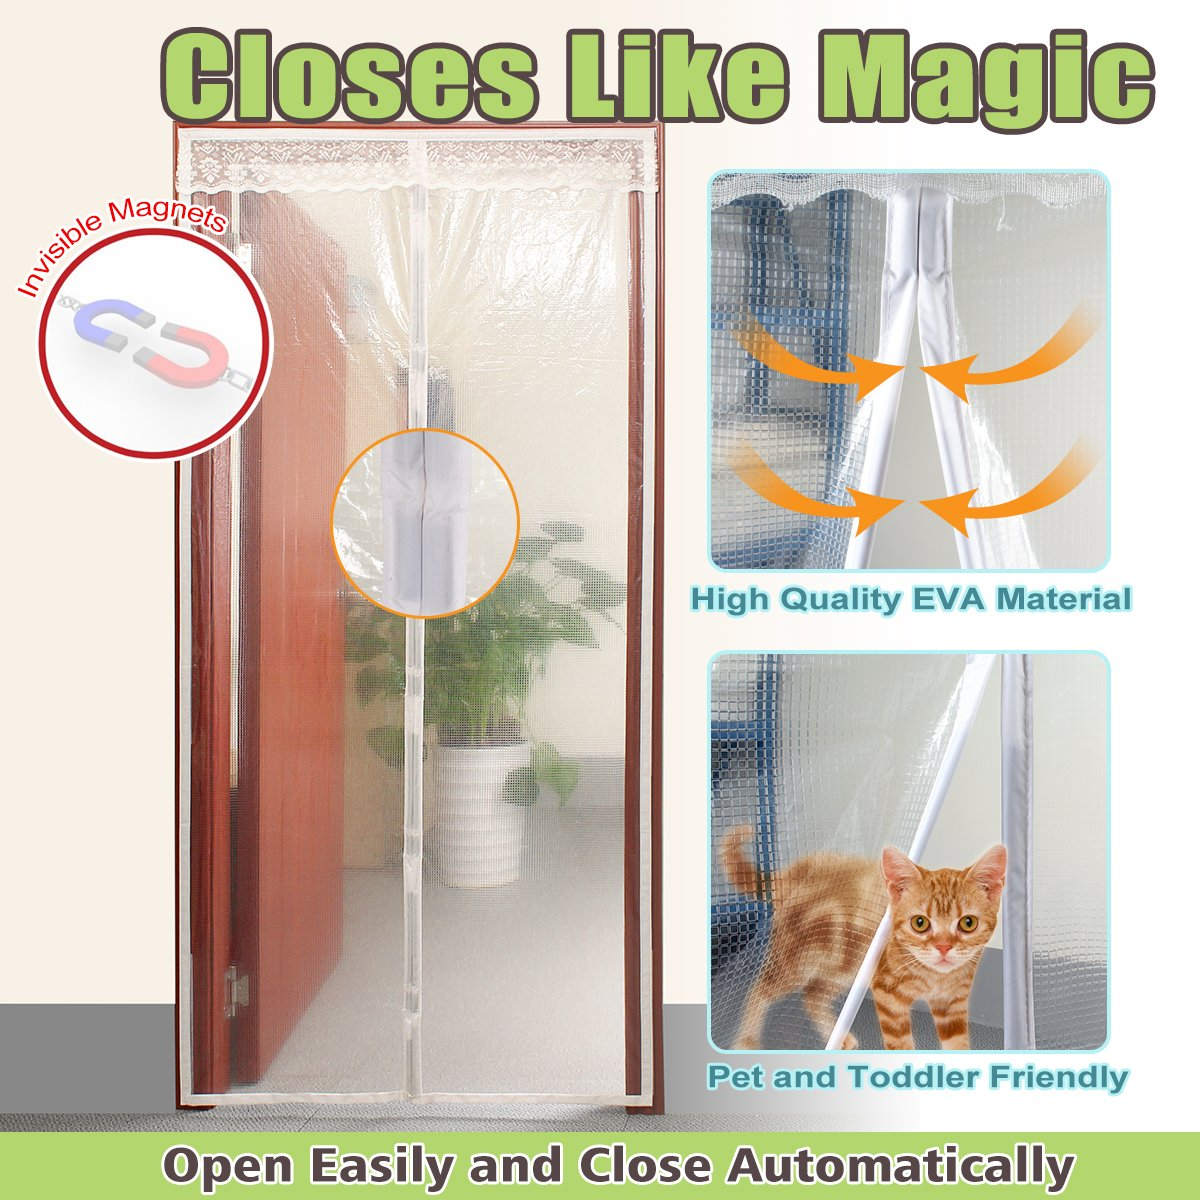 Transparent Magnetic Thermal Insulated Door Curtain Enjoy Your Cool Summer And Warm Winter With Saving You Money Door Curtain Auto Closer Fits Doors Up To ...  sc 1 st  Amazon.com & Transparent Magnetic Thermal Insulated Door Curtain Enjoy Your Cool ...